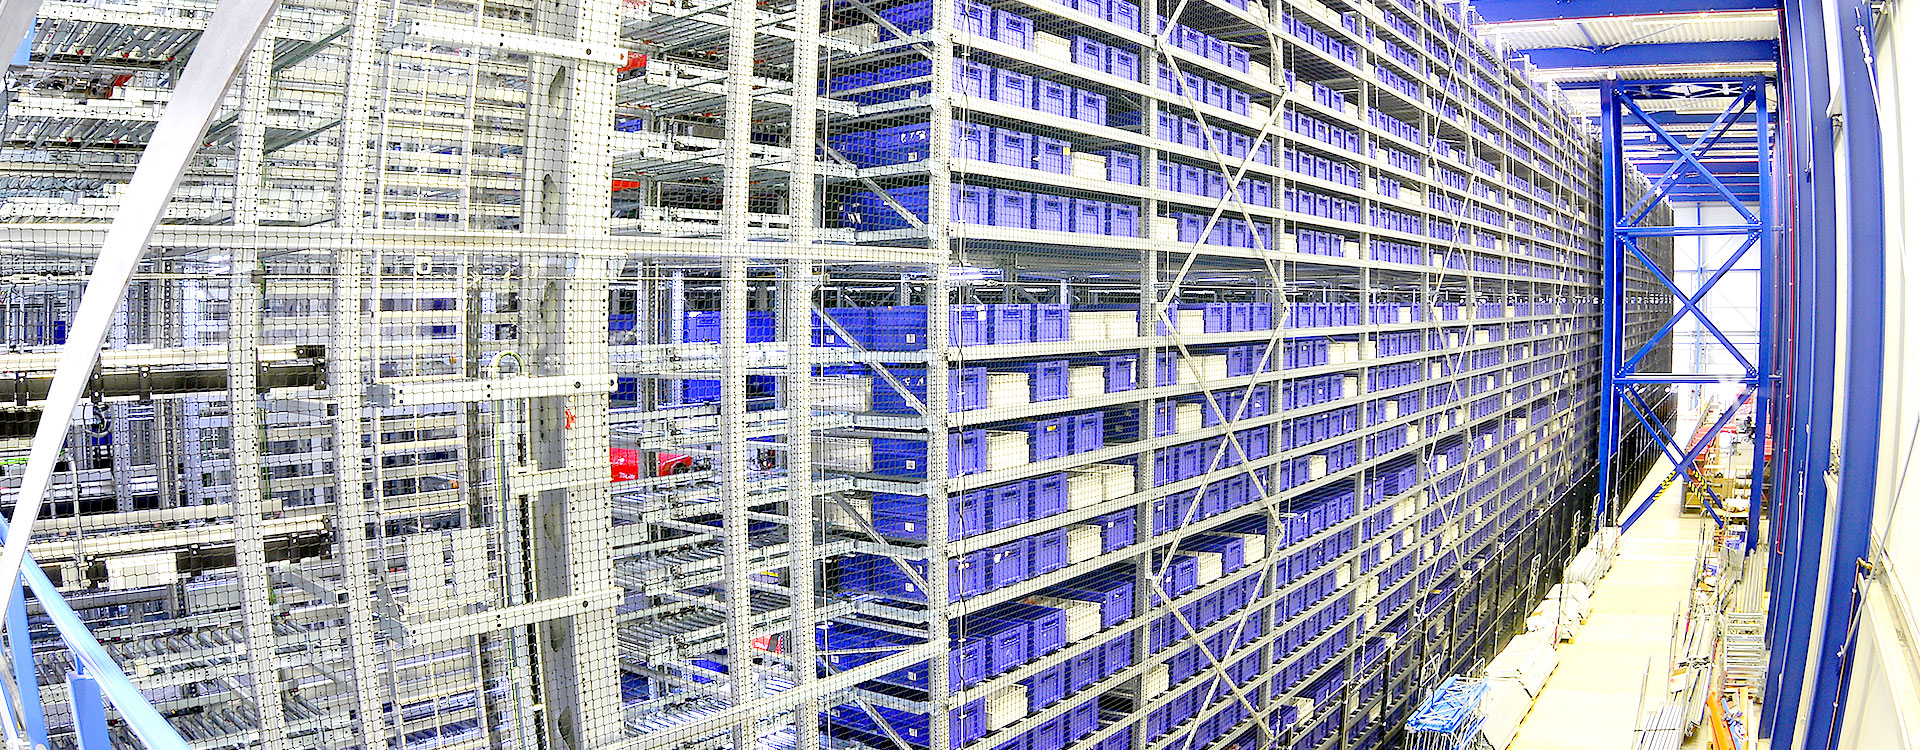 HEMA E-commerce Distribution Center - Inther Group